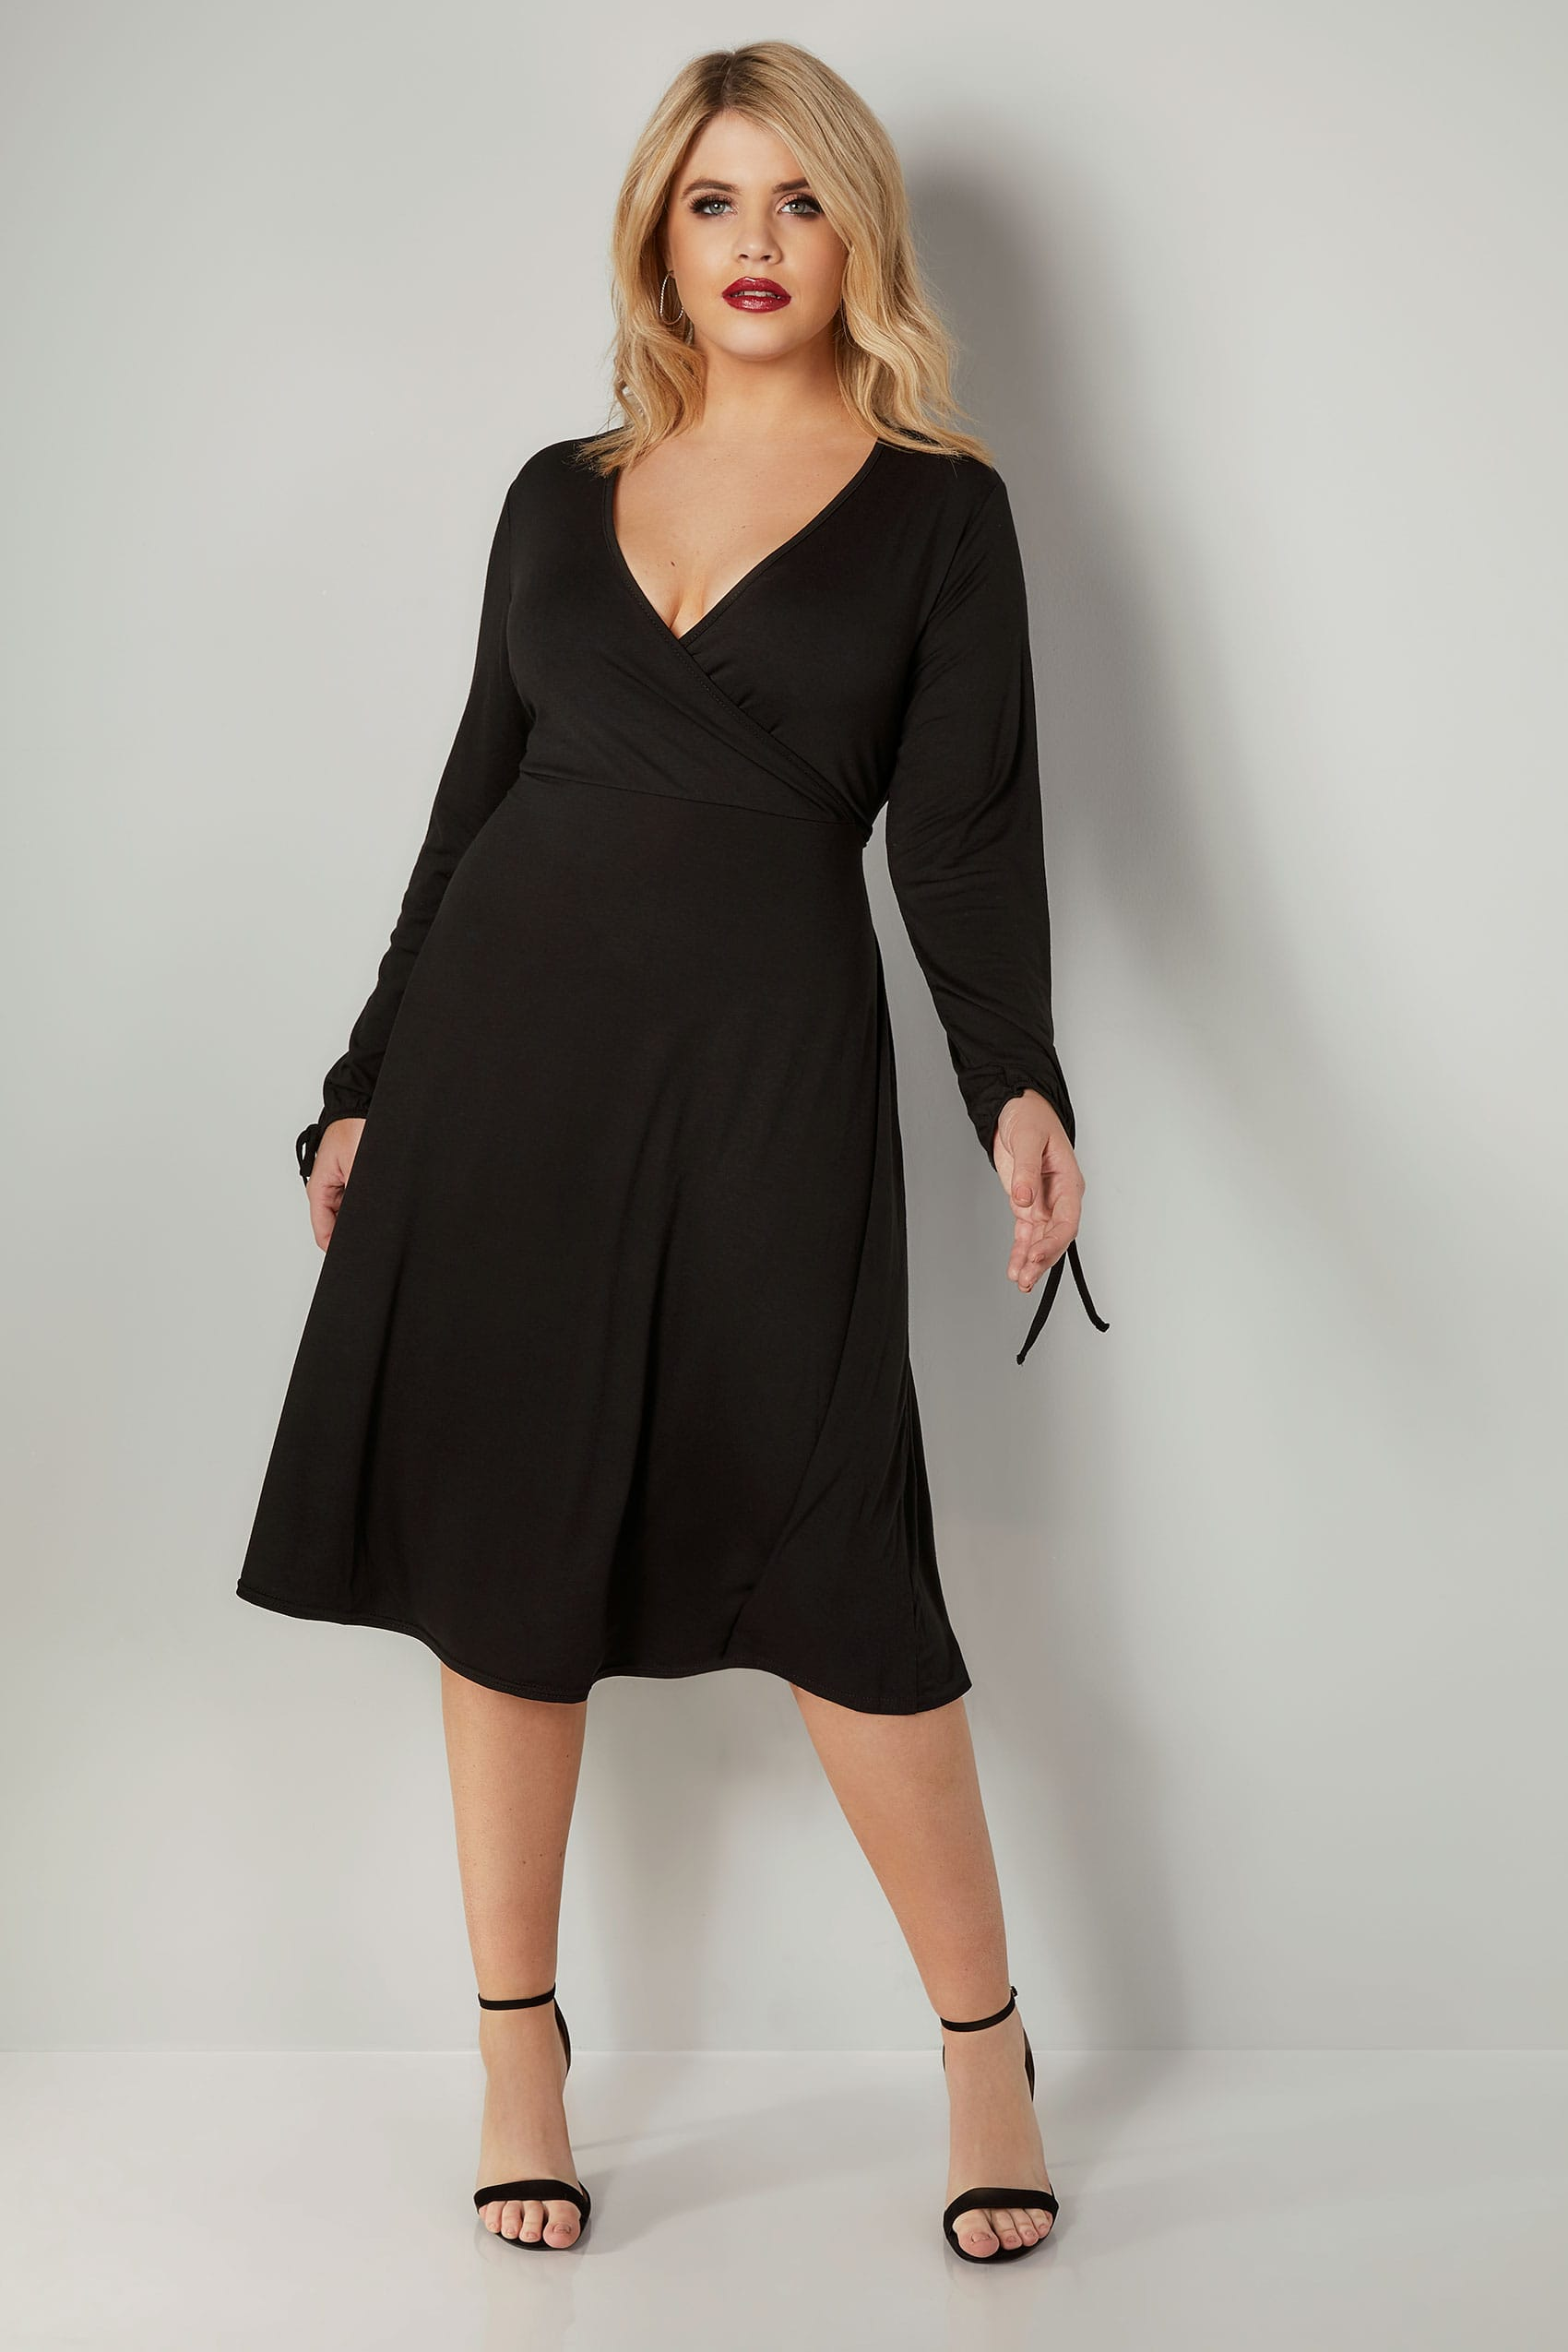 143 305 70httpswww Bing Commapsq Go To Www Bing Com Form Hdrsc4: YOURS LONDON Black Jersey Wrap Dress With Tie Sleeves